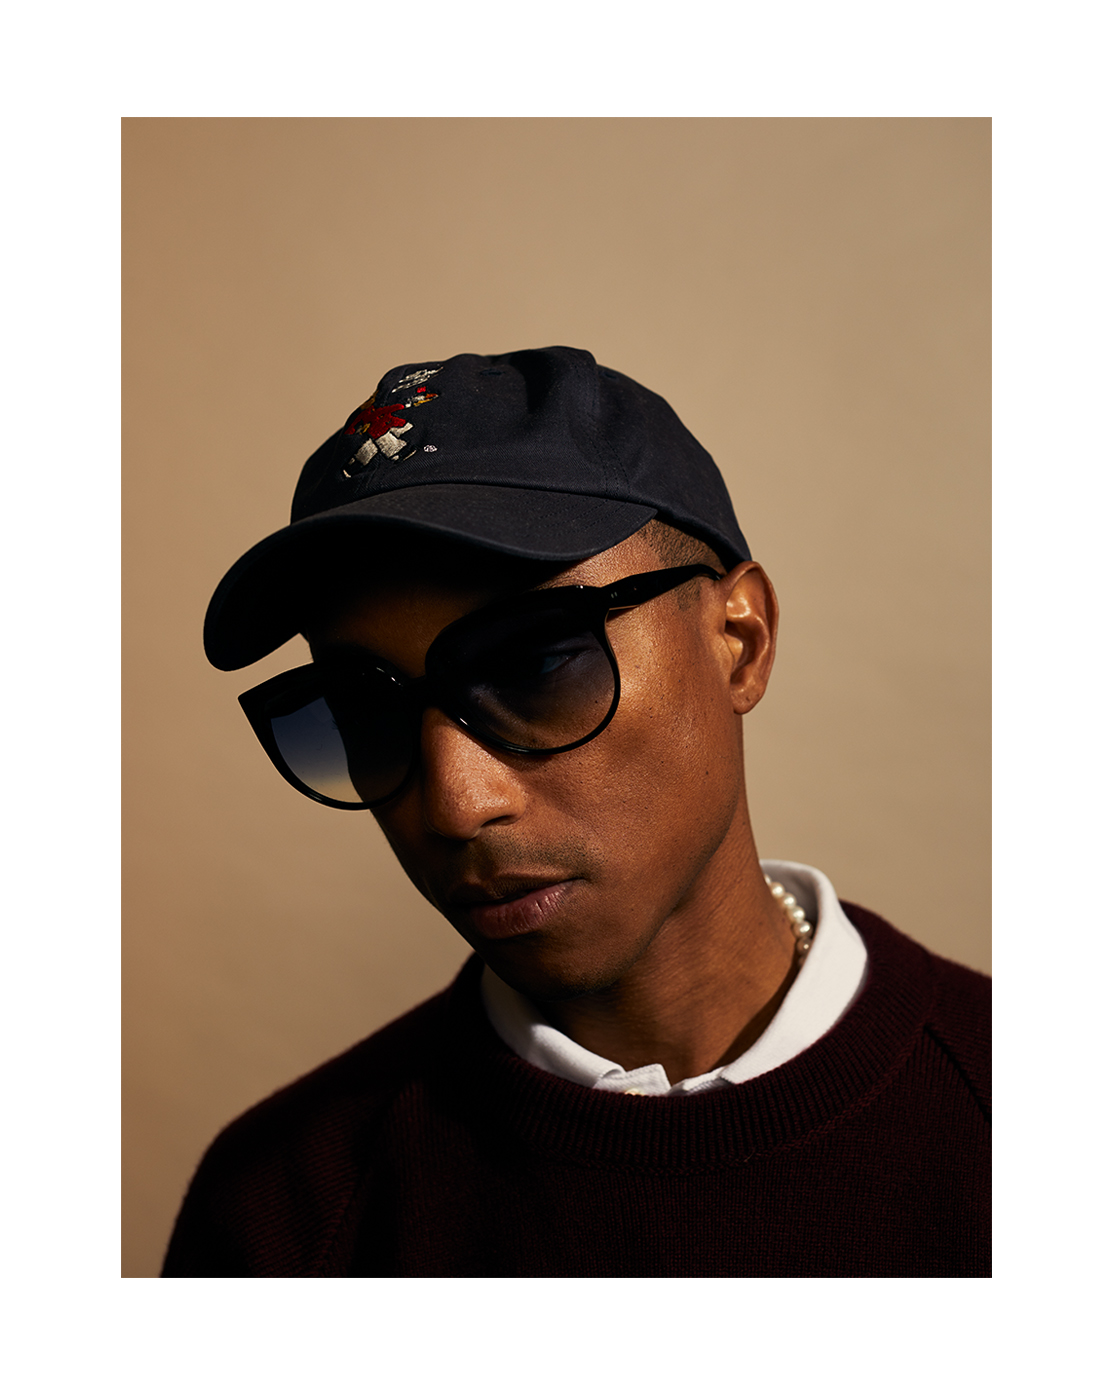 Pharrell, photographed for WWD by Brad Torchia